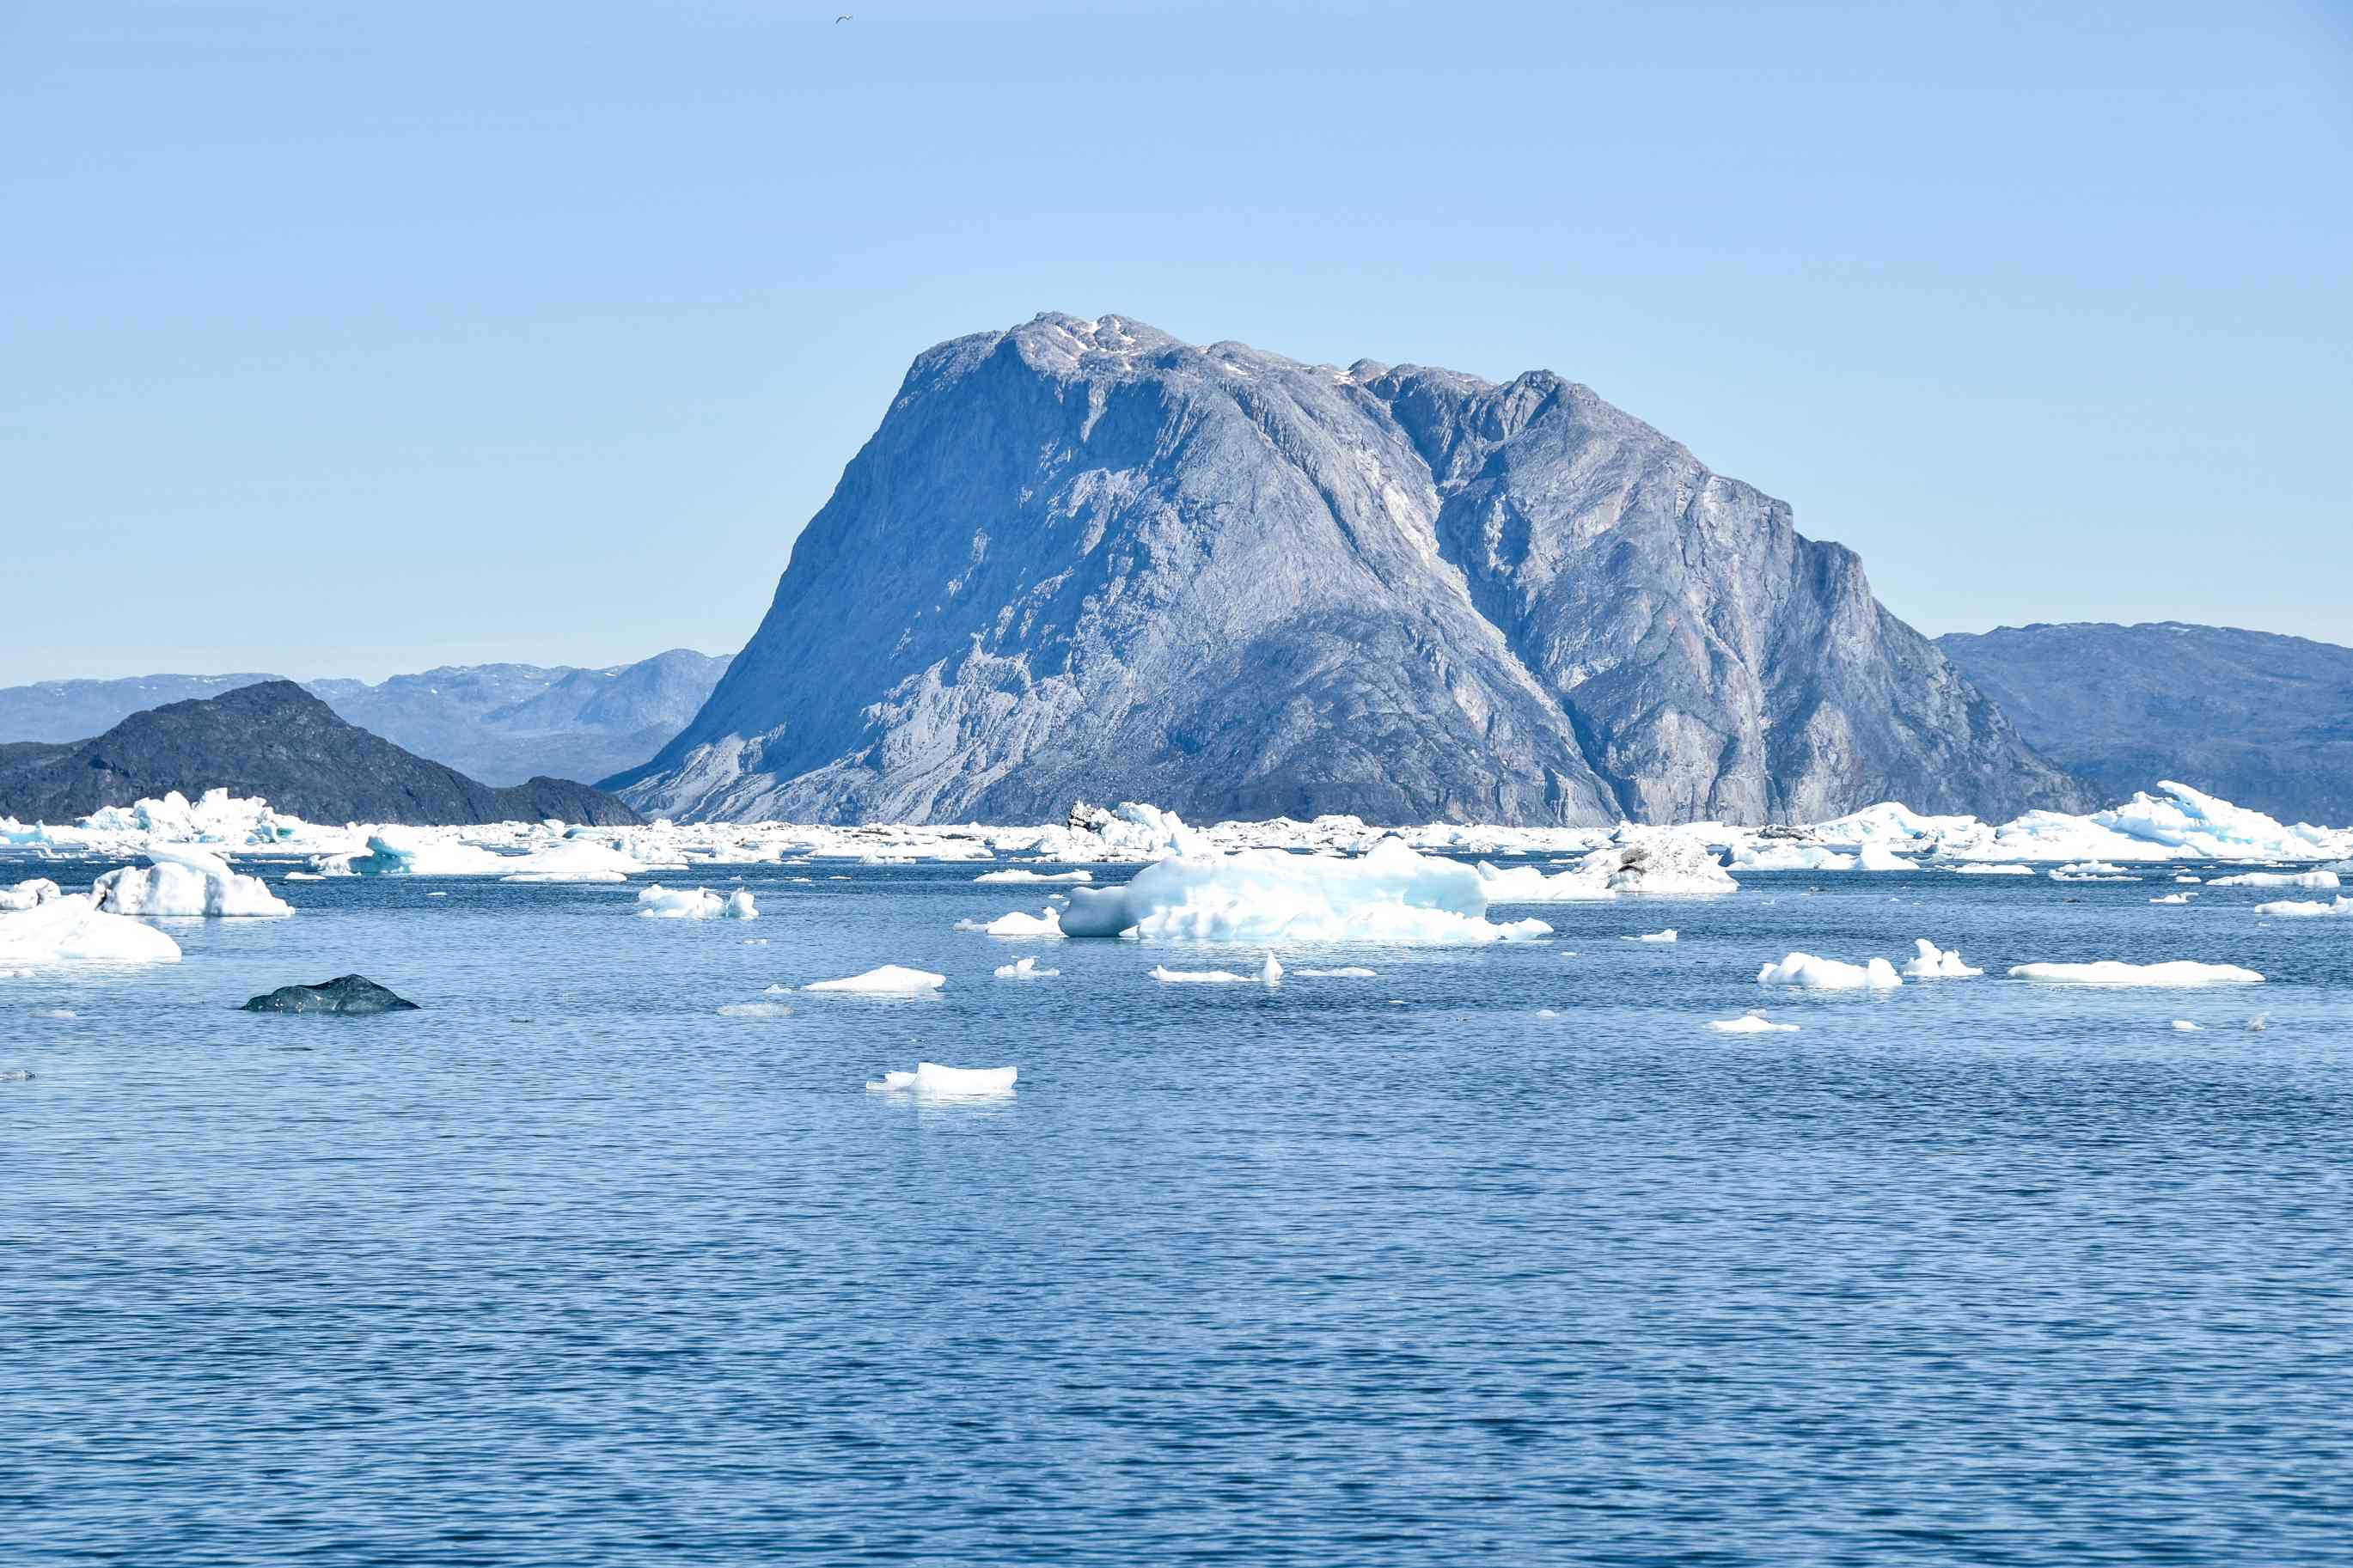 View of the arctic ocean with ice bergs in the water